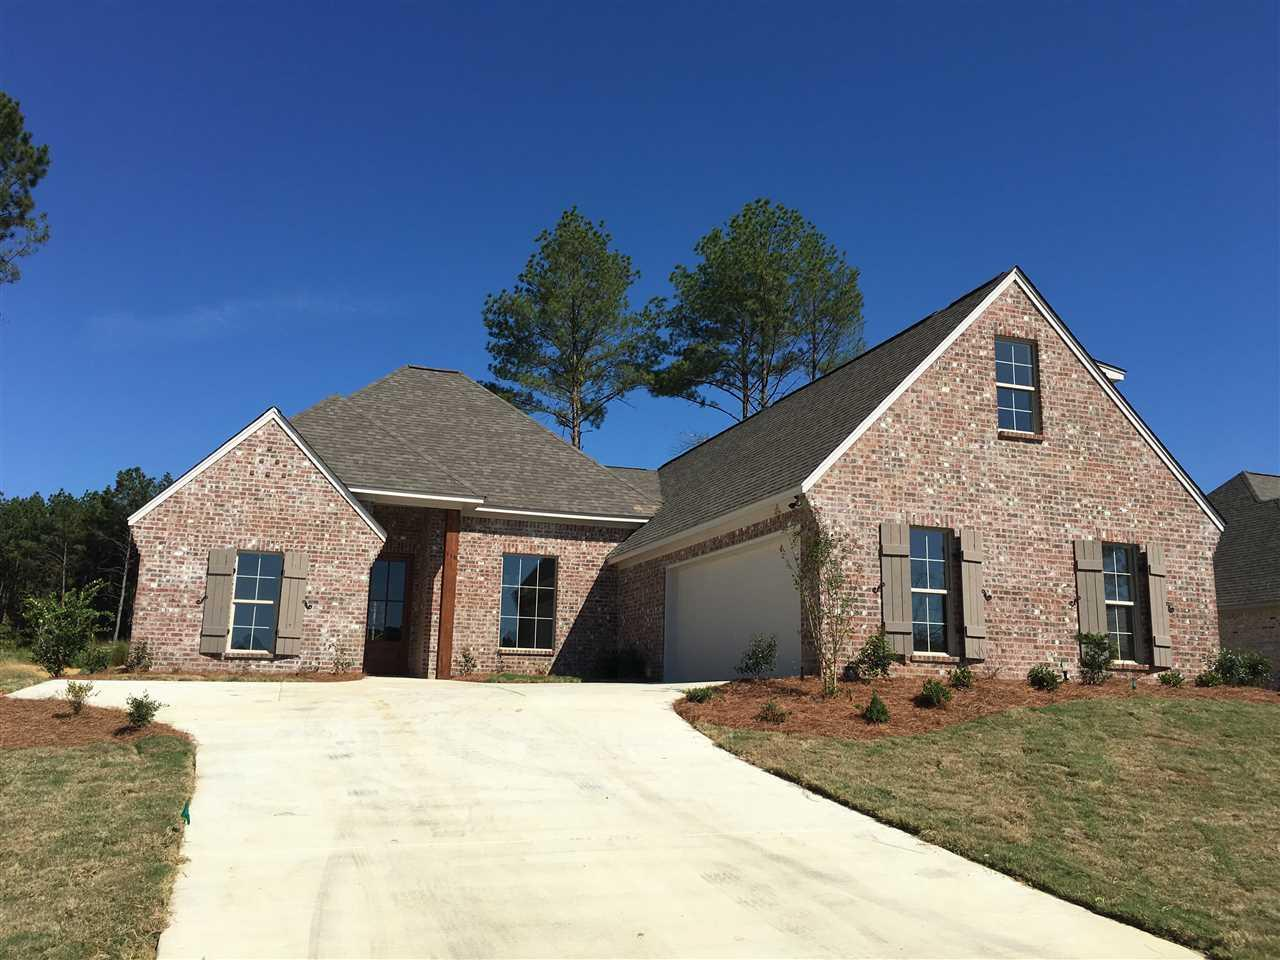 118 murrell dr madison ms mls 290889 era for Home builders madison ms